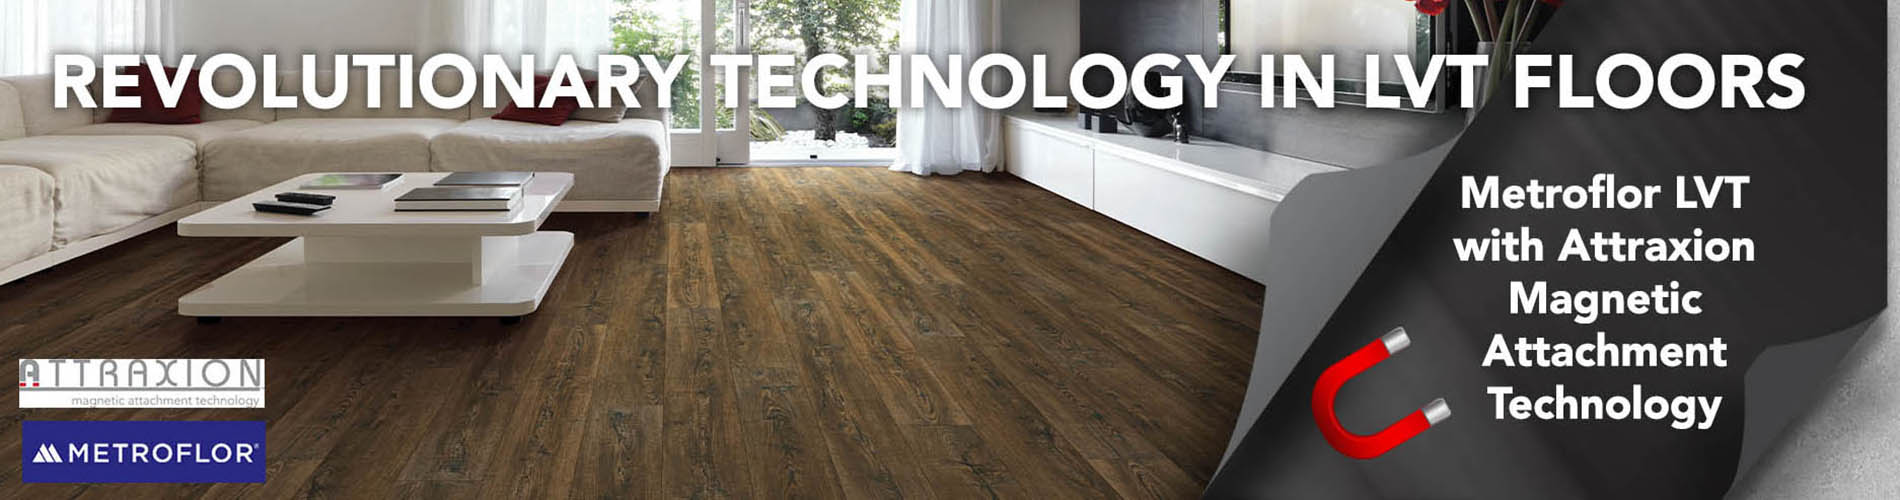 Save on Metroflor revolutionary luxury vinyl tile floors with attraxion magnetic attachment technology.